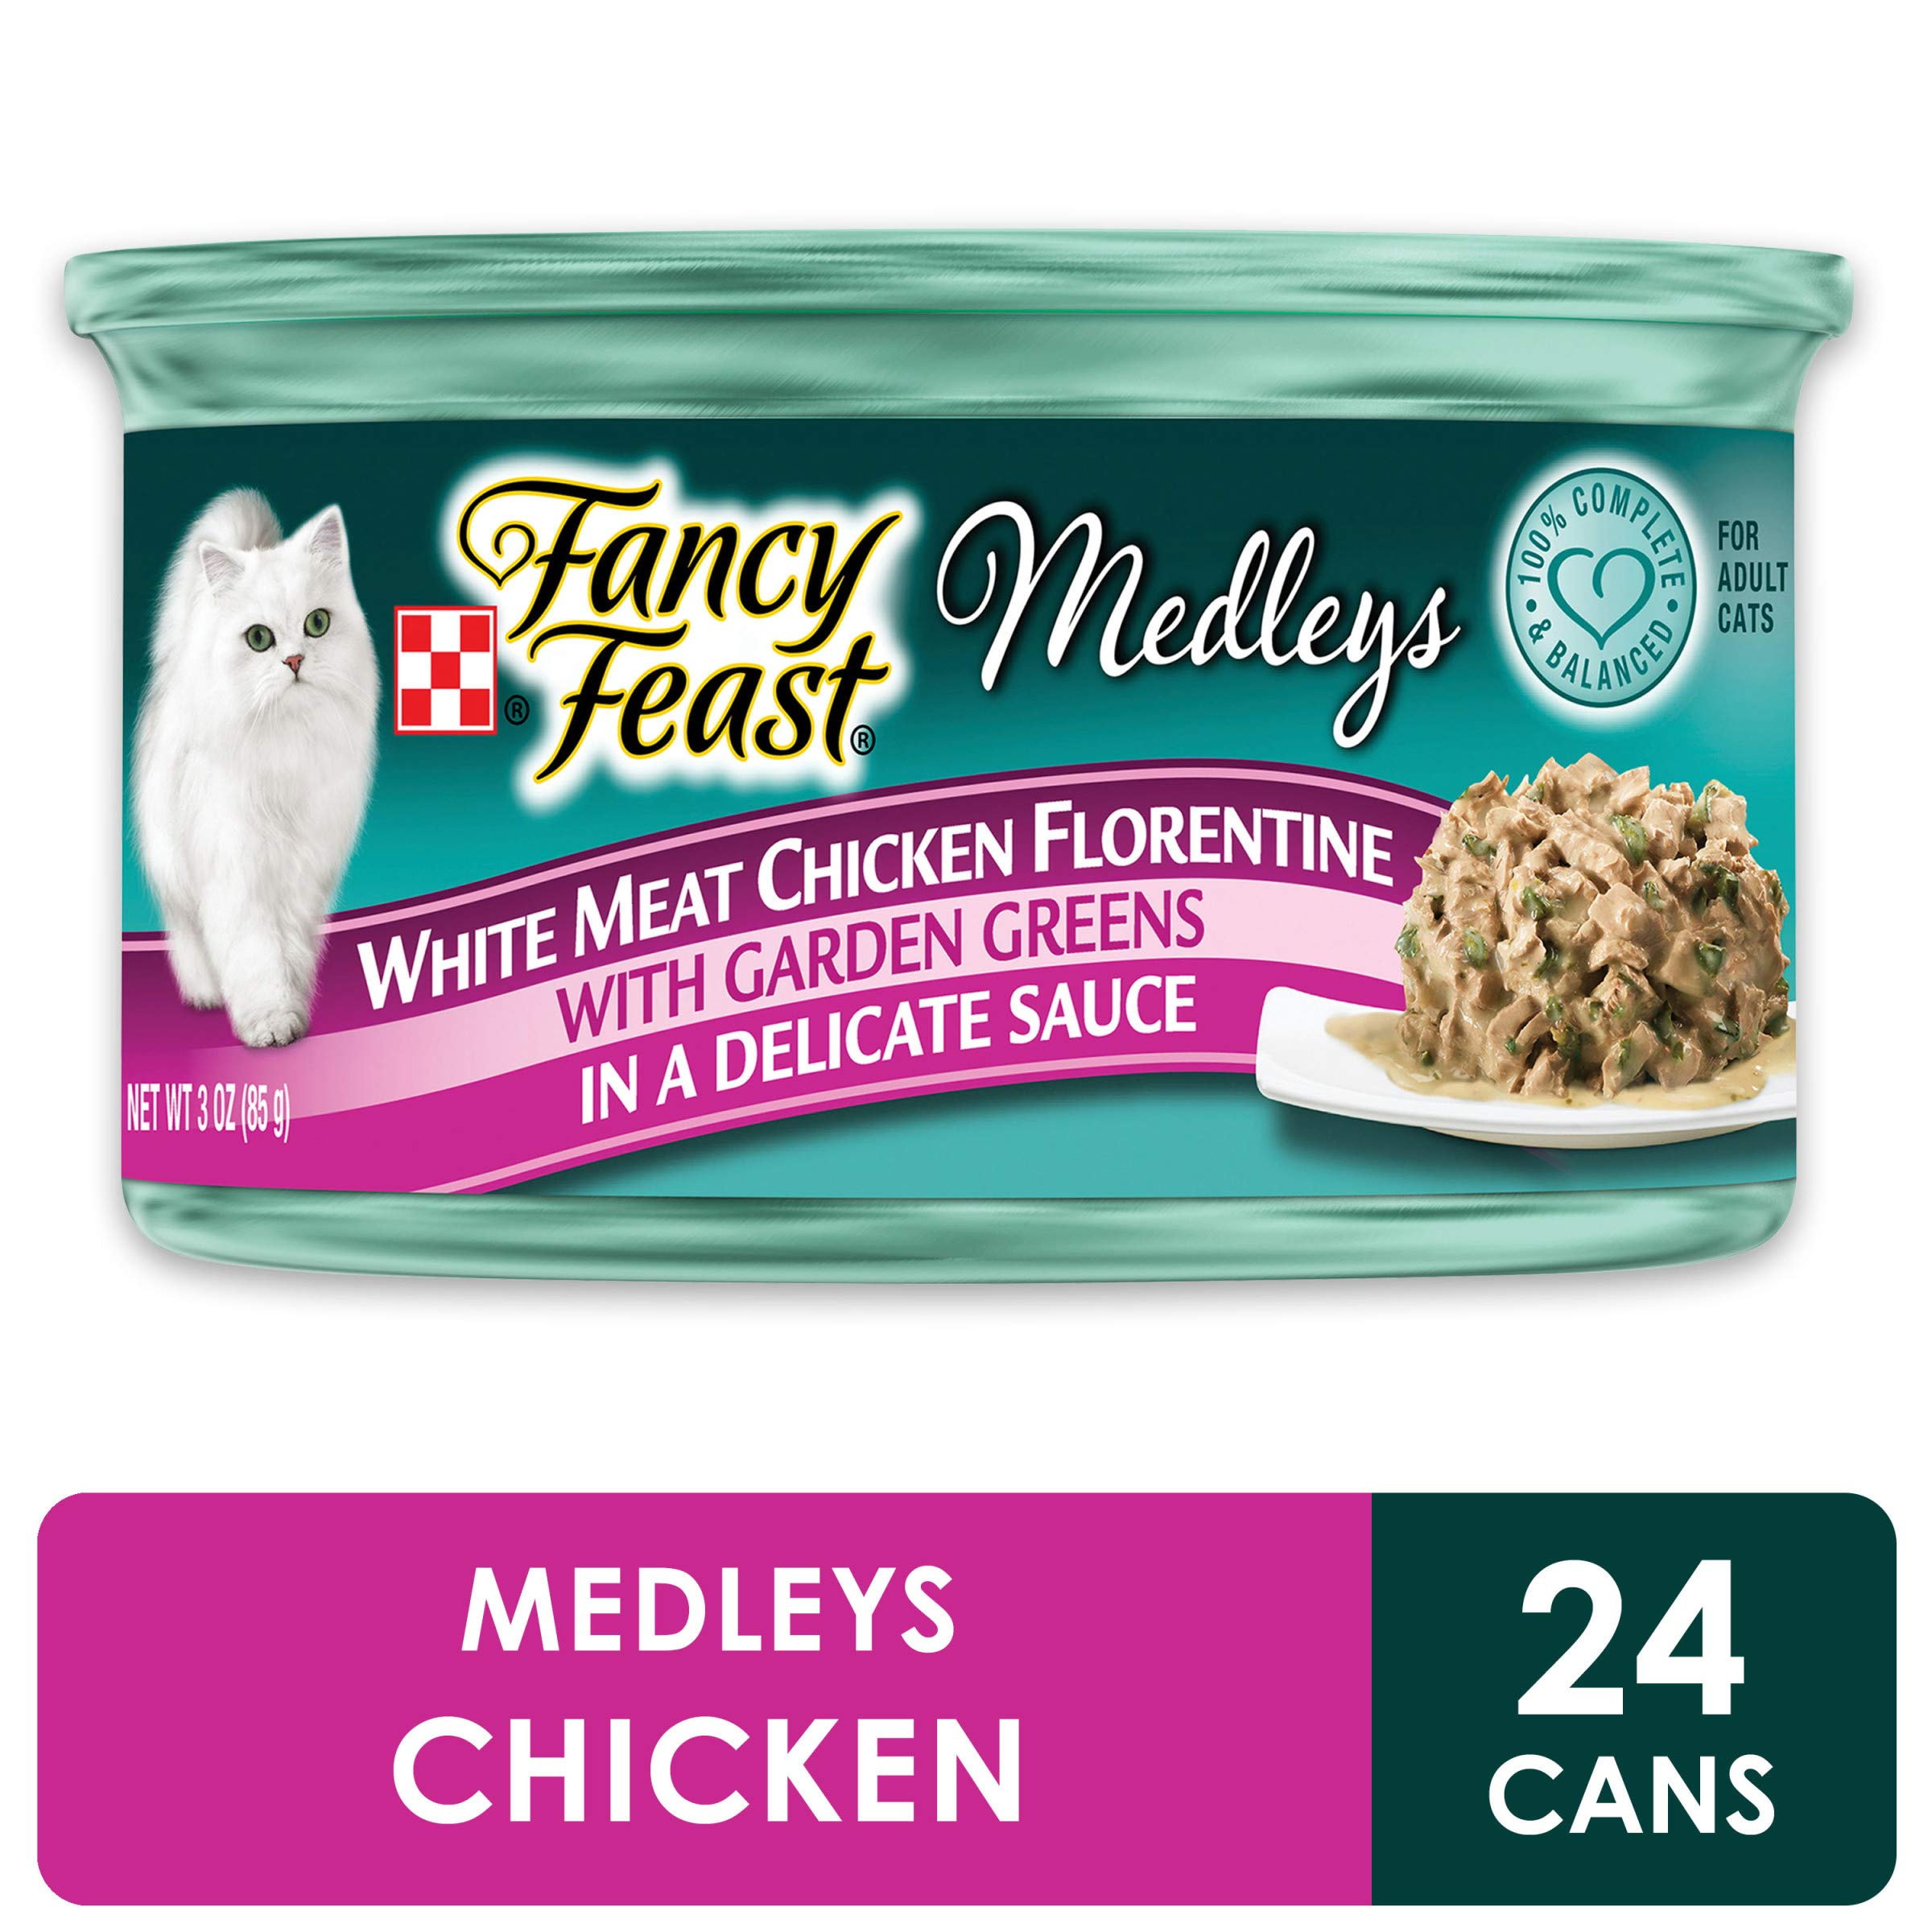 Purina Fancy Feast Gravy Wet Cat Food, Medleys White Meat Chicken Florentine With Garden Greens - (24) 3 oz. Cans by Purina Fancy Feast